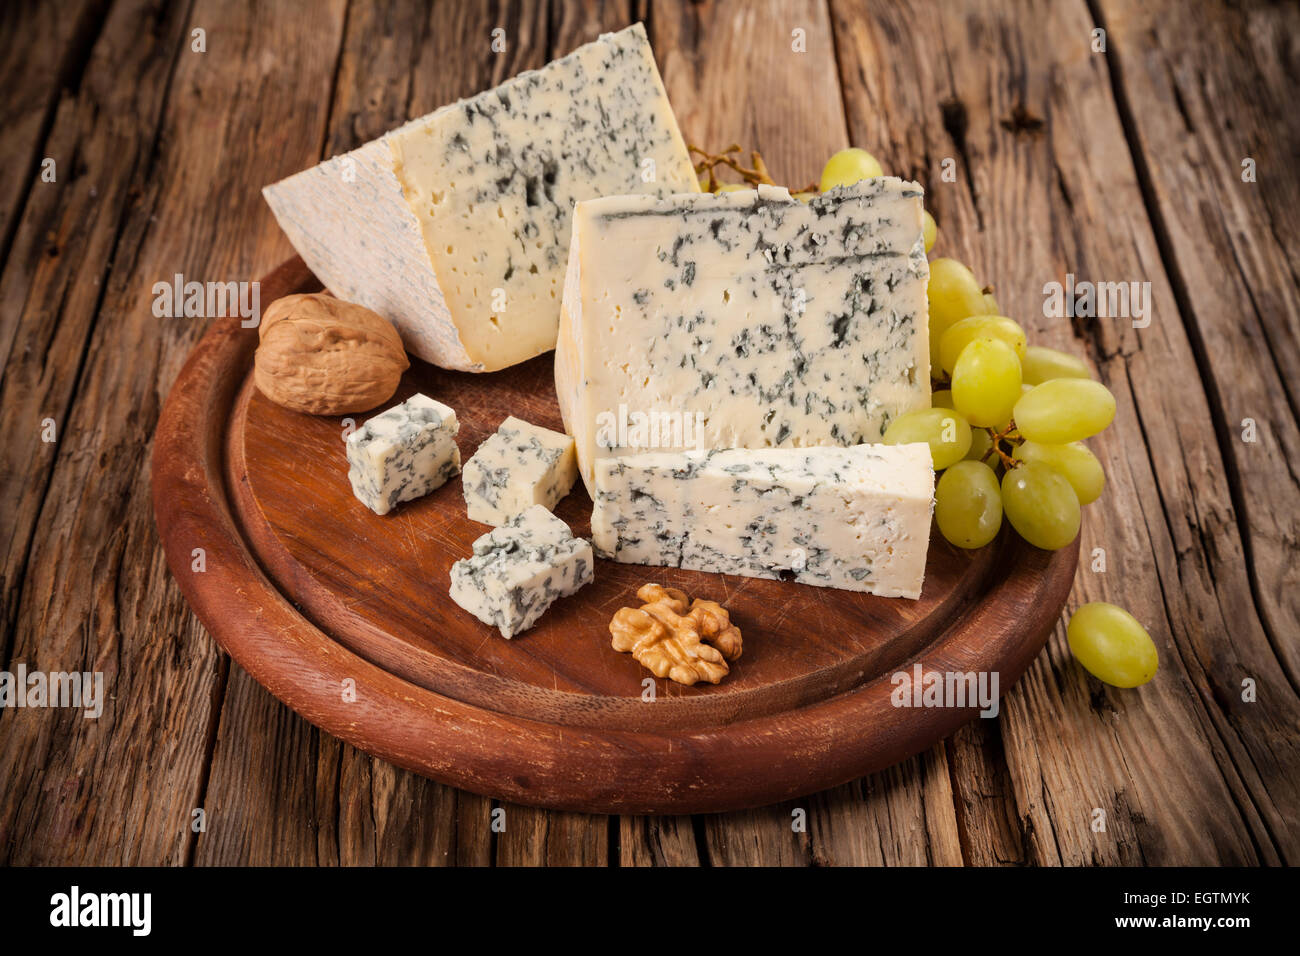 Still life of blue cheese served on wood - Stock Image